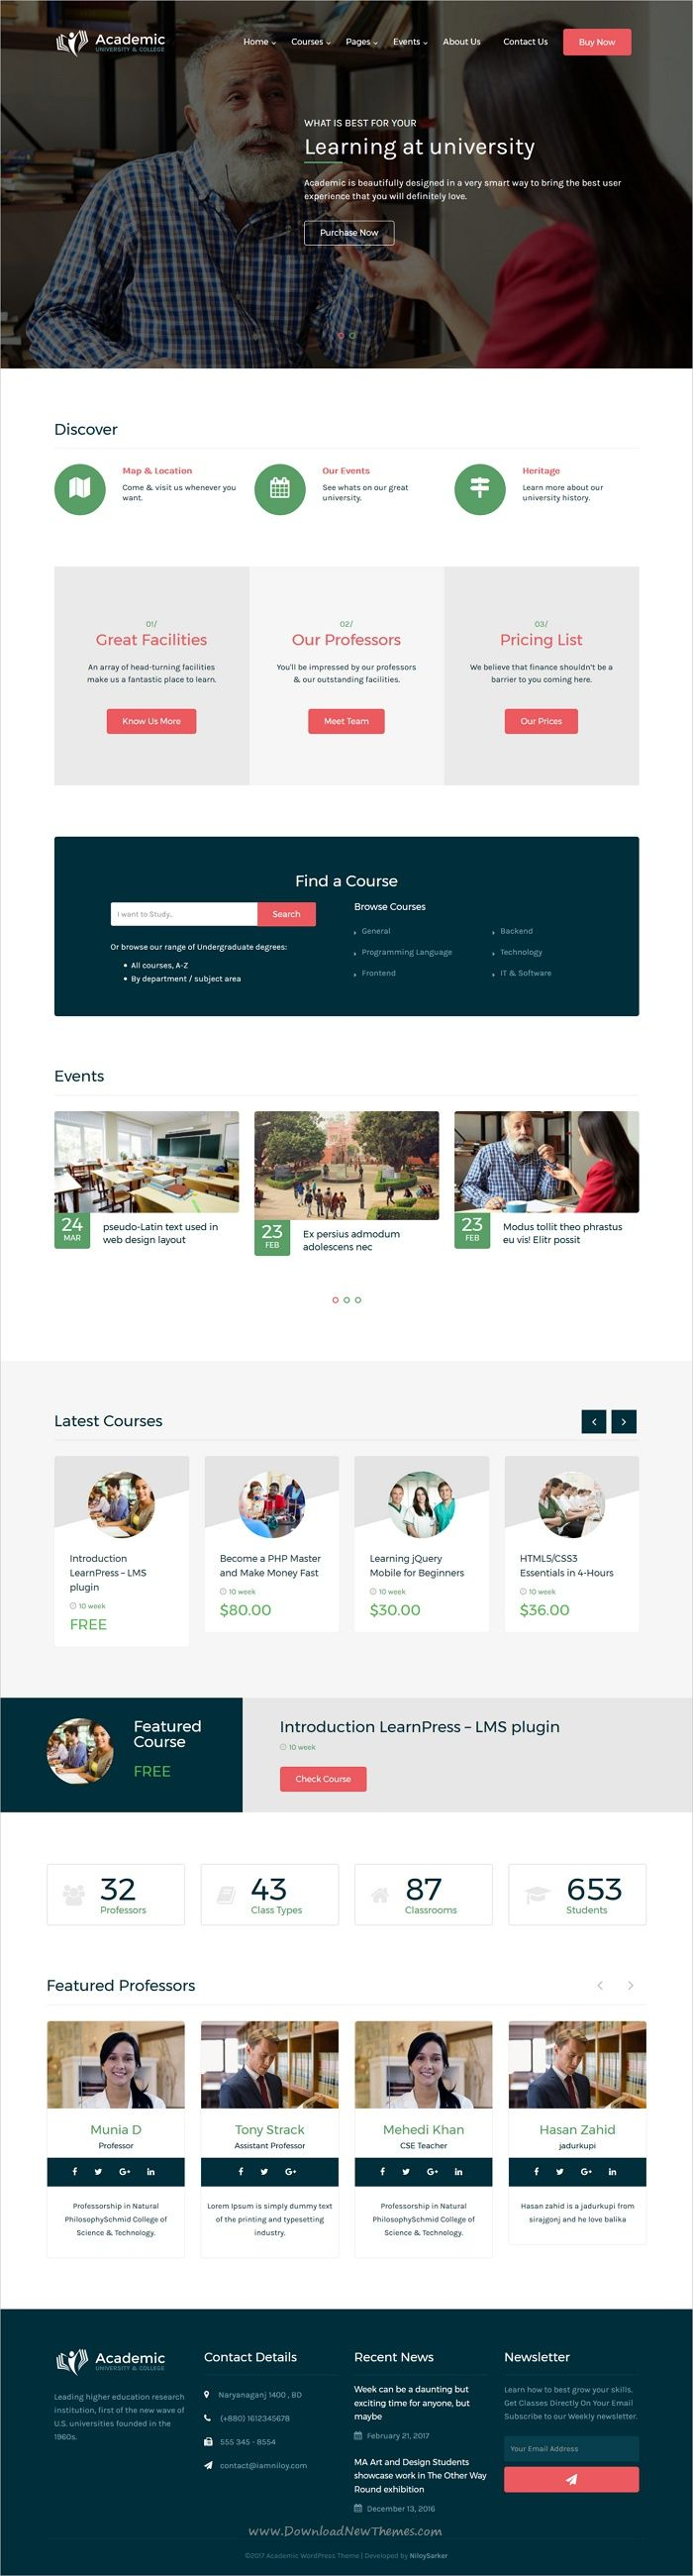 Academic is a wonderful 2in1 responsive #WordPress theme for #webdev #college and online course related educational website download now➩  https://themeforest.net/item/academic-education-theme-for-wordpress/19257775?ref=Datasata